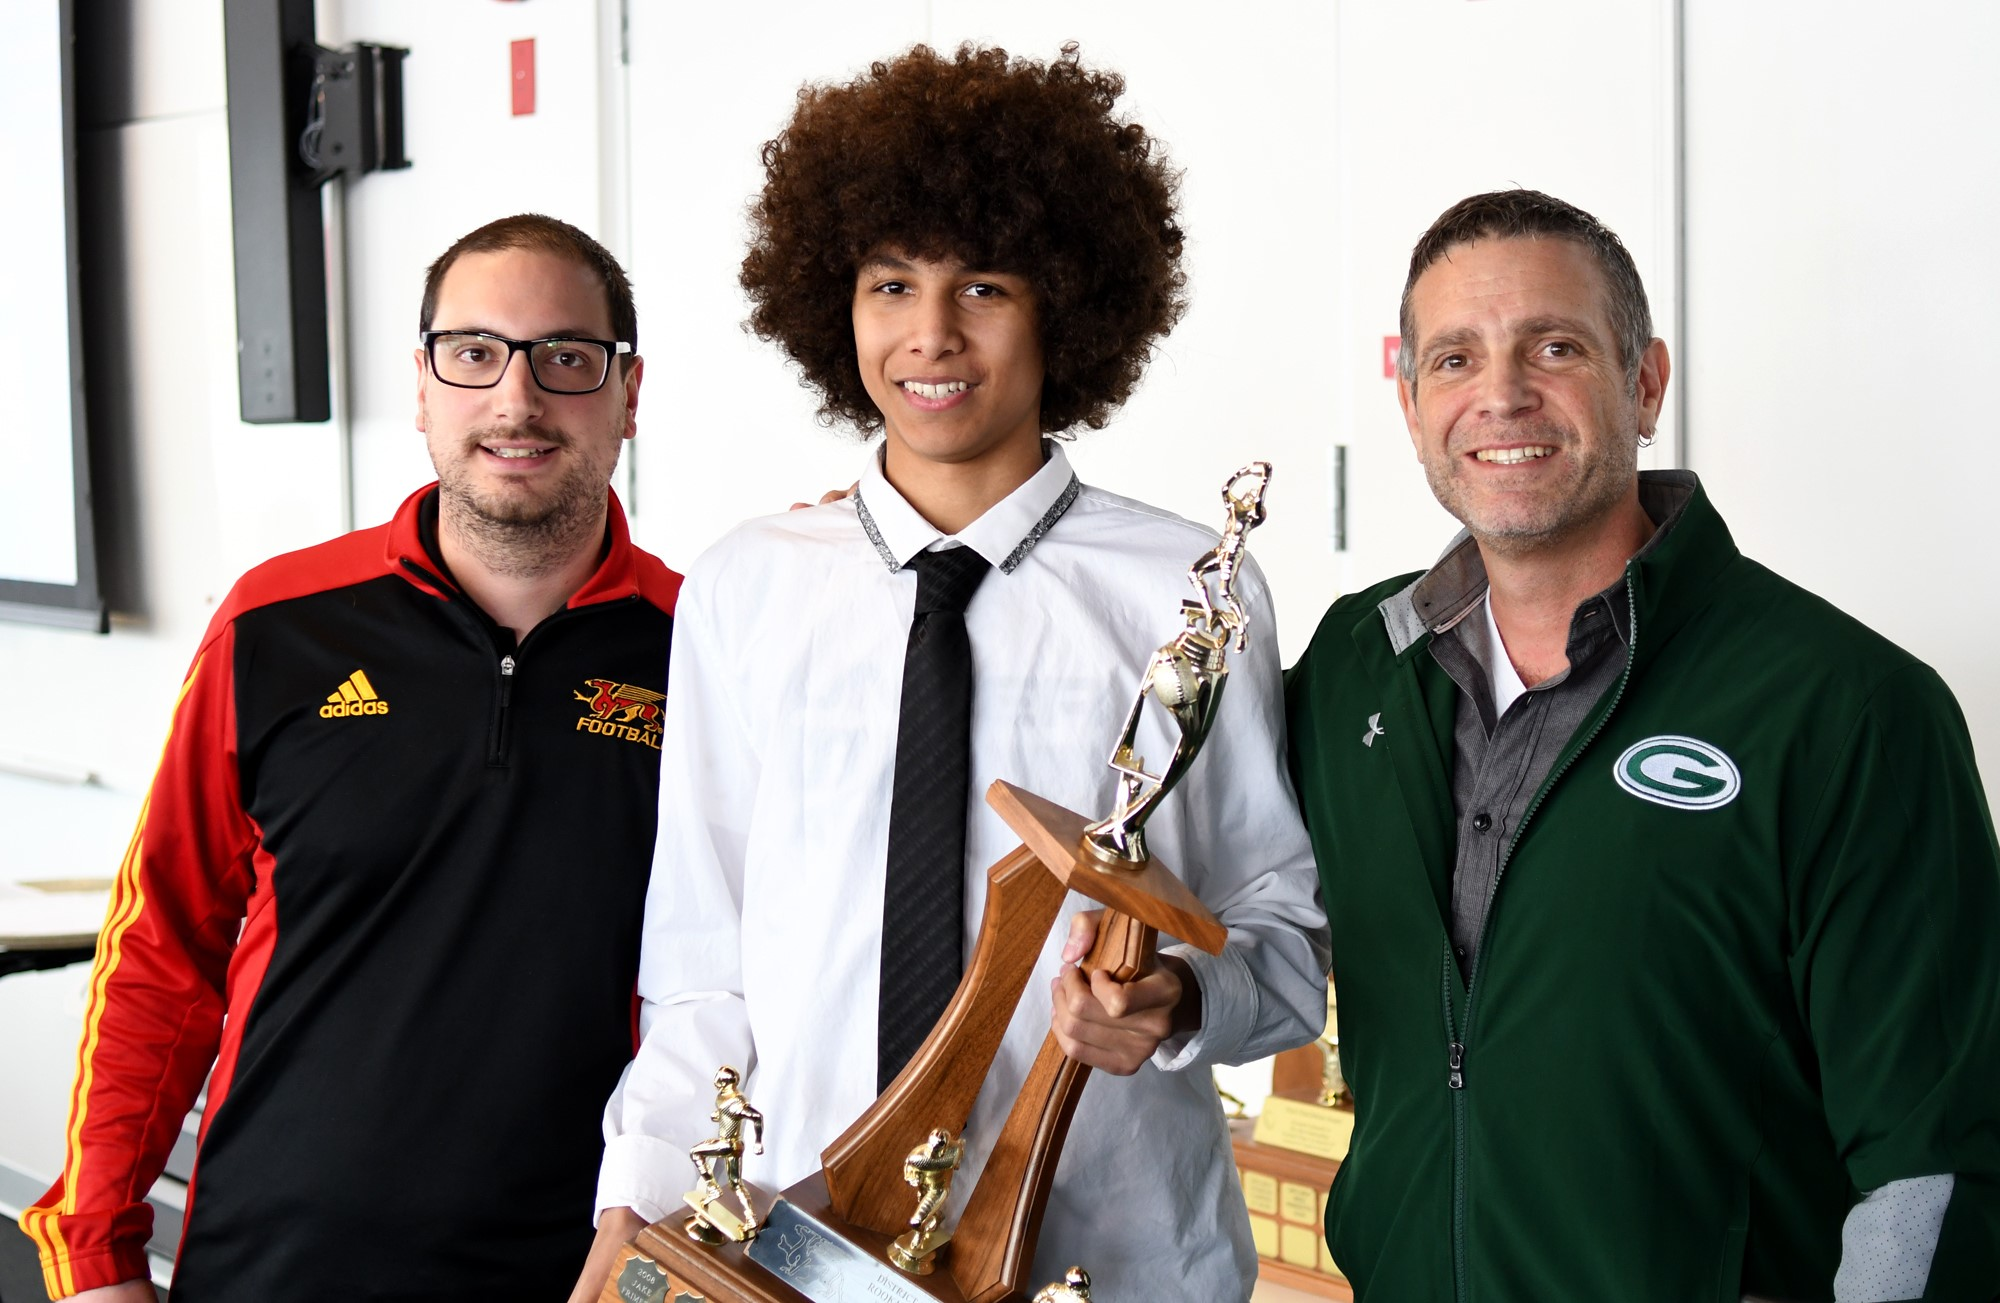 Gryphon Director of Football Operations Mike Aloisio, left, with rookie of the year award winner Keyon Robinson, middle, and Guelph CVI coach Dan Crabbe.